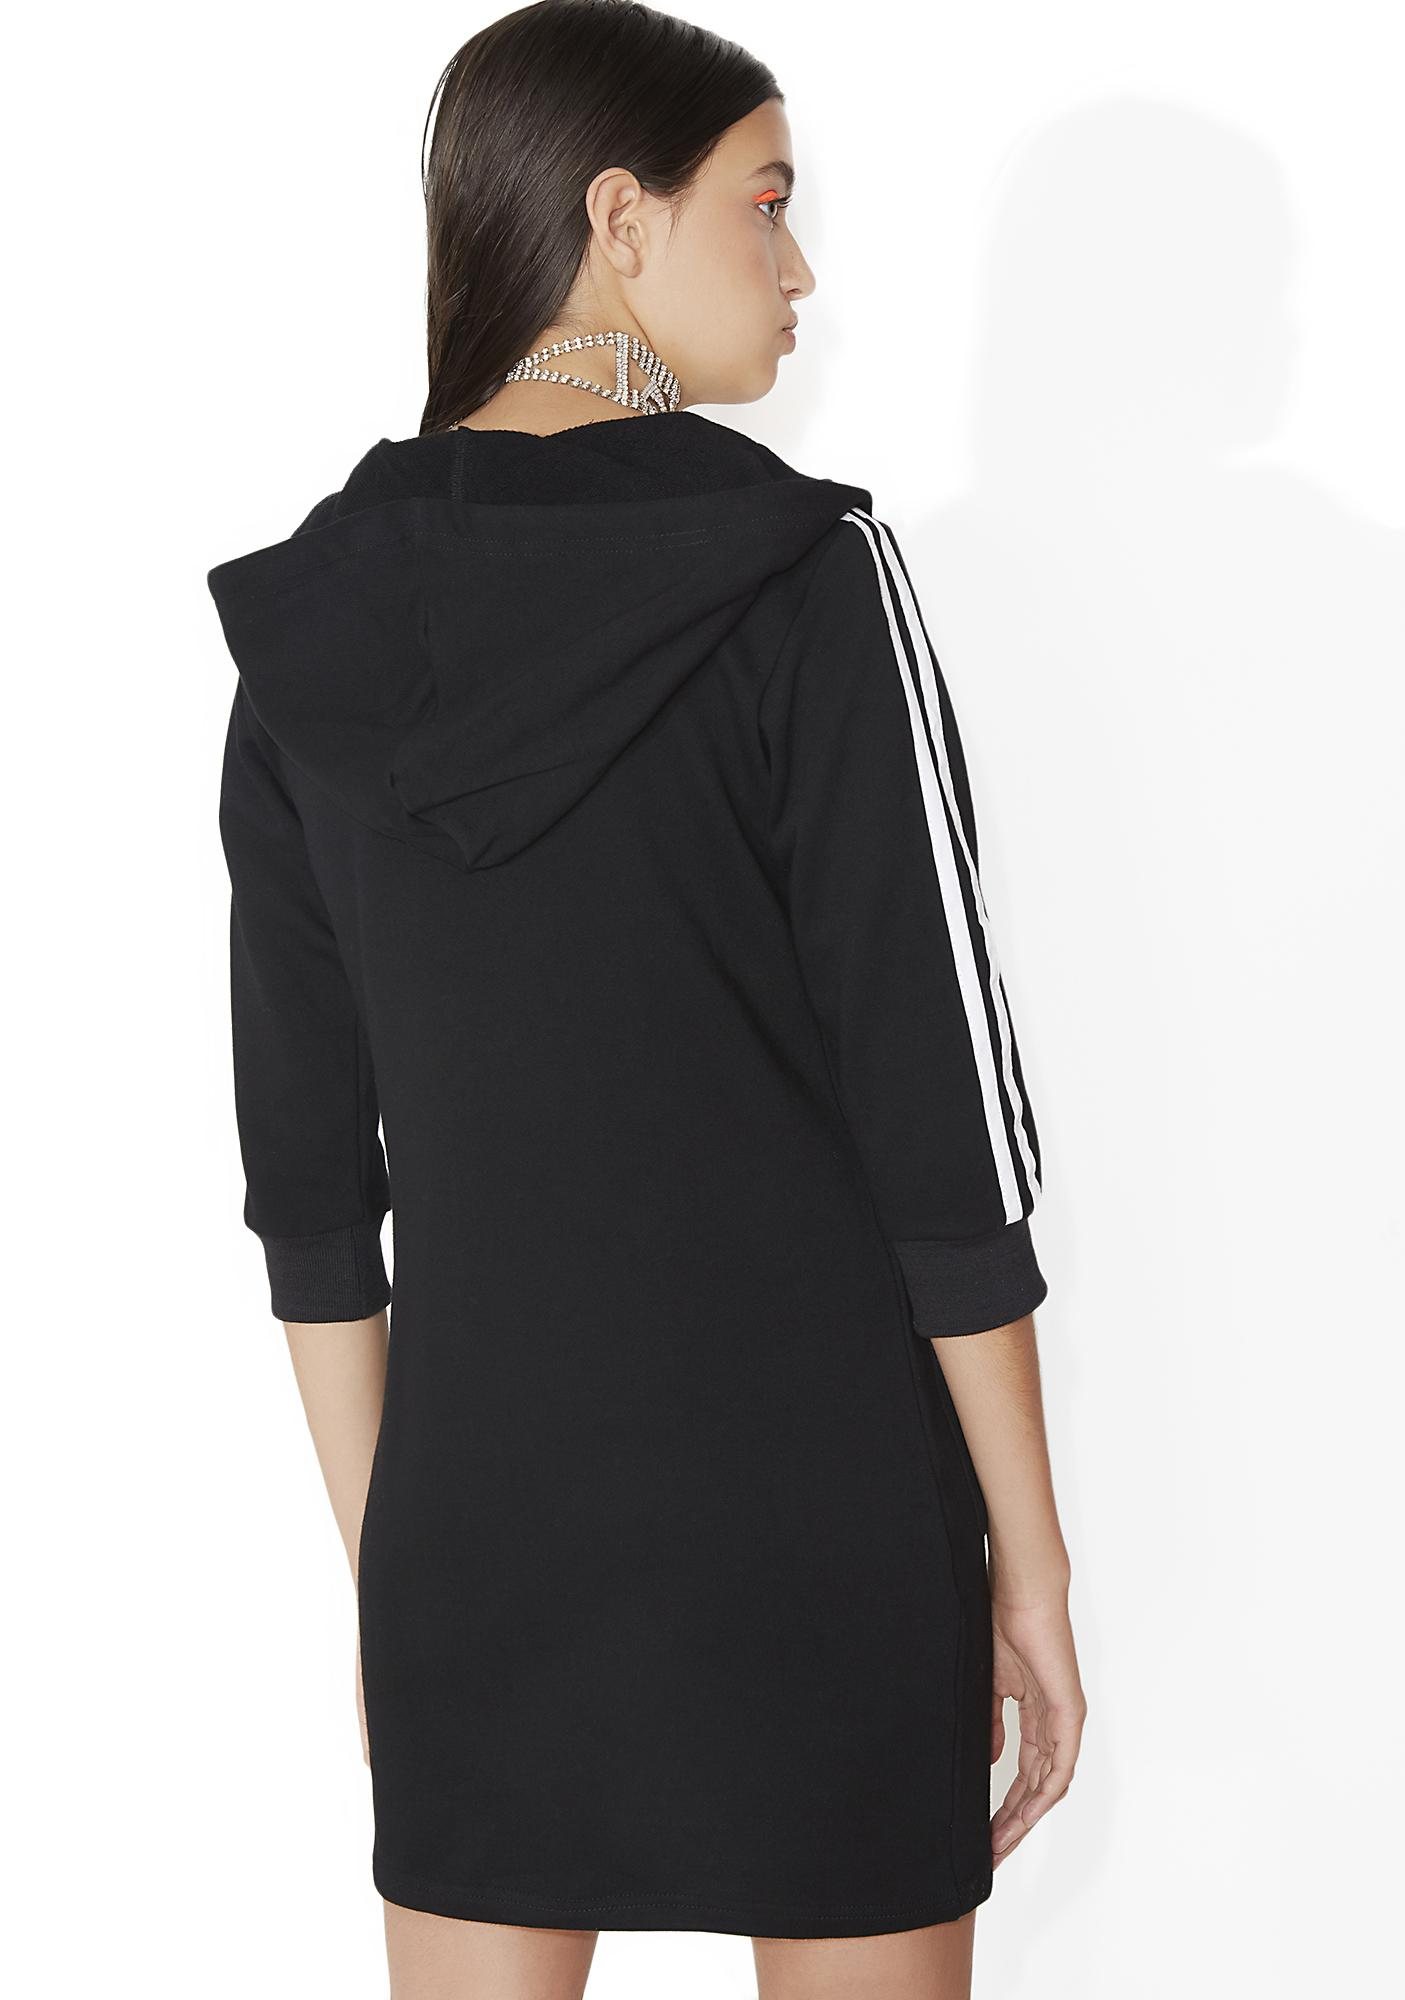 Relay Runna Hoodie Dress